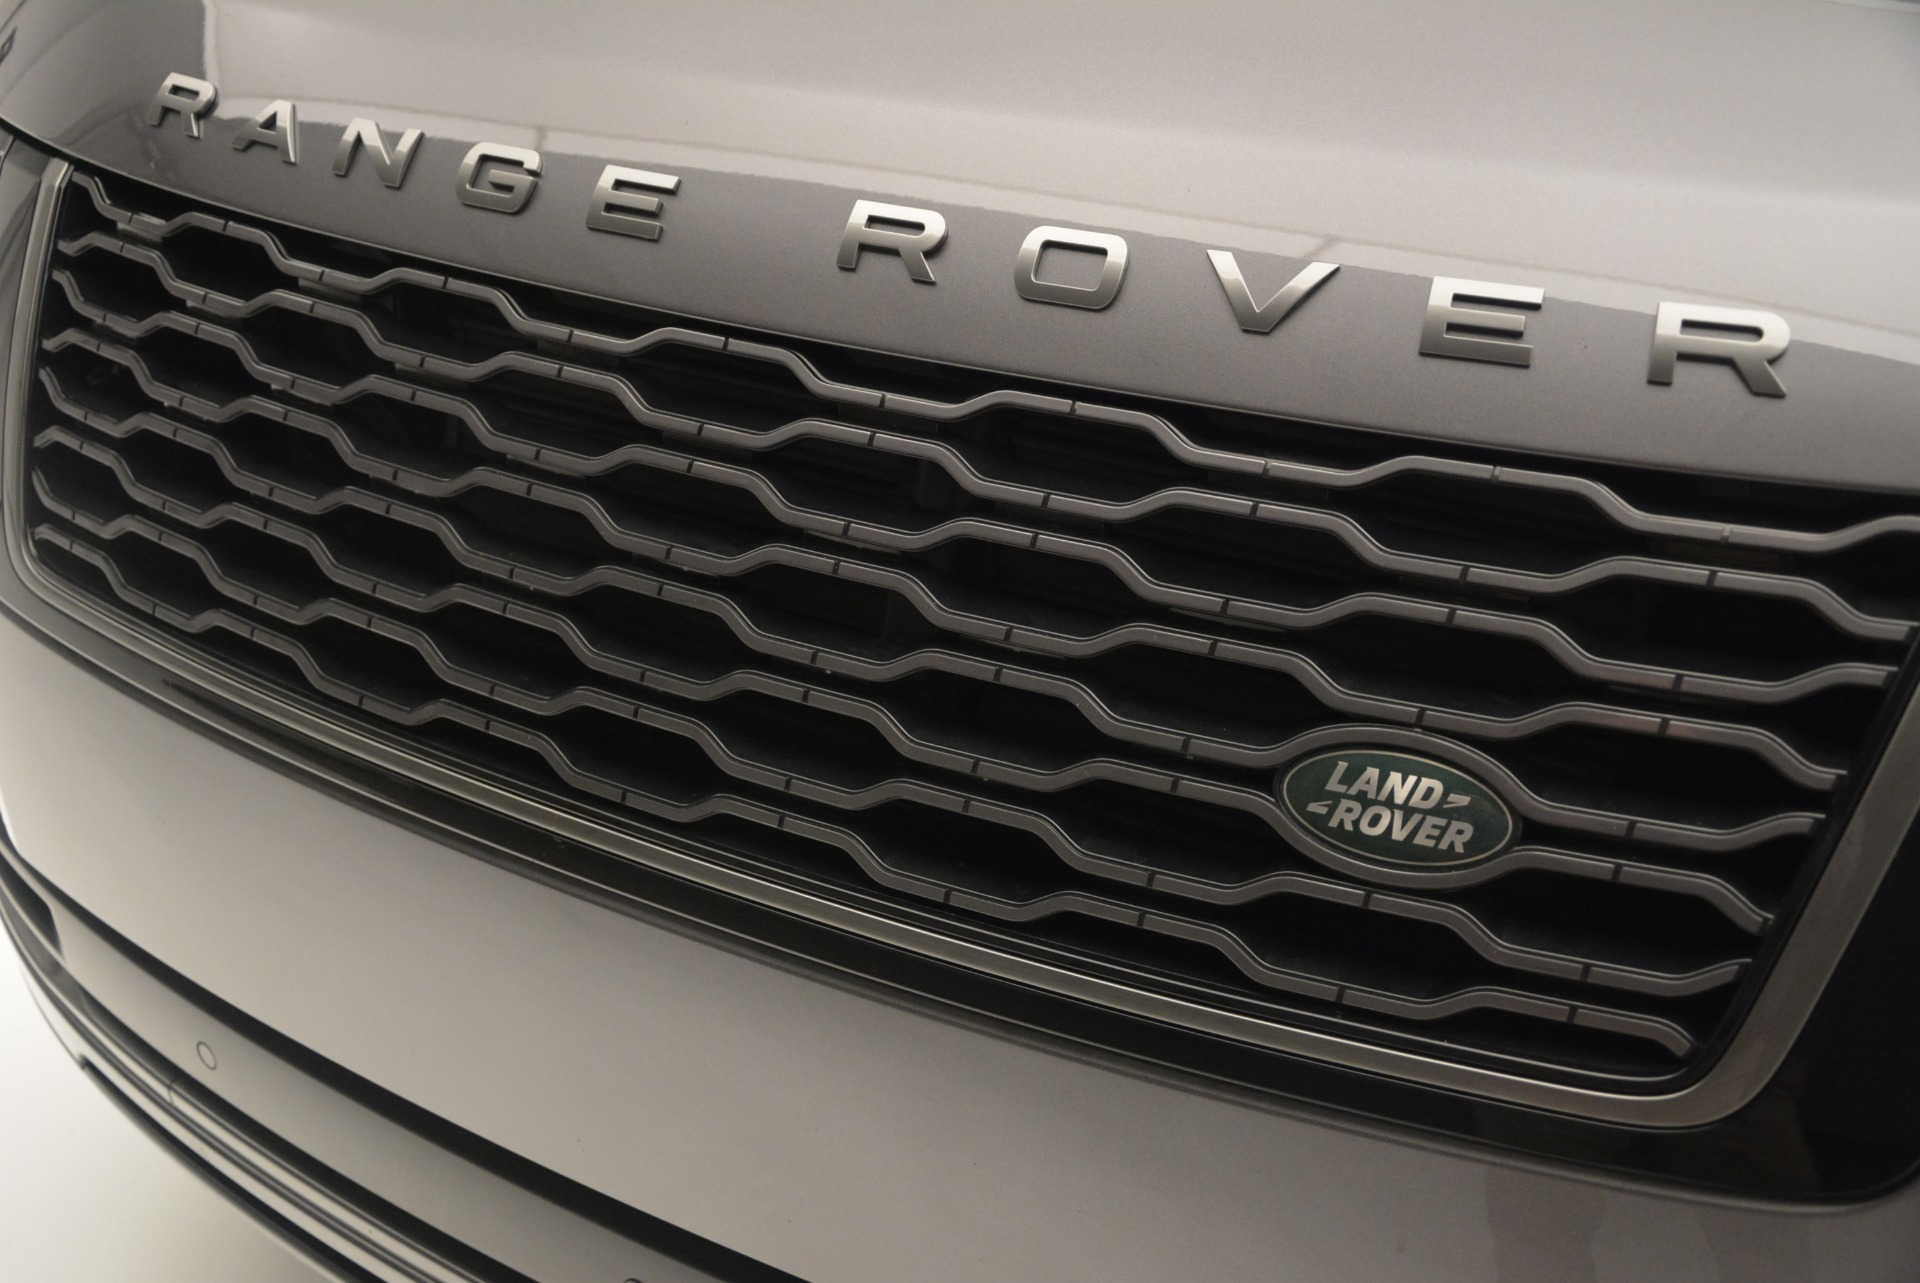 Used 2018 Land Rover Range Rover Supercharged LWB For Sale In Greenwich, CT 2291_p13